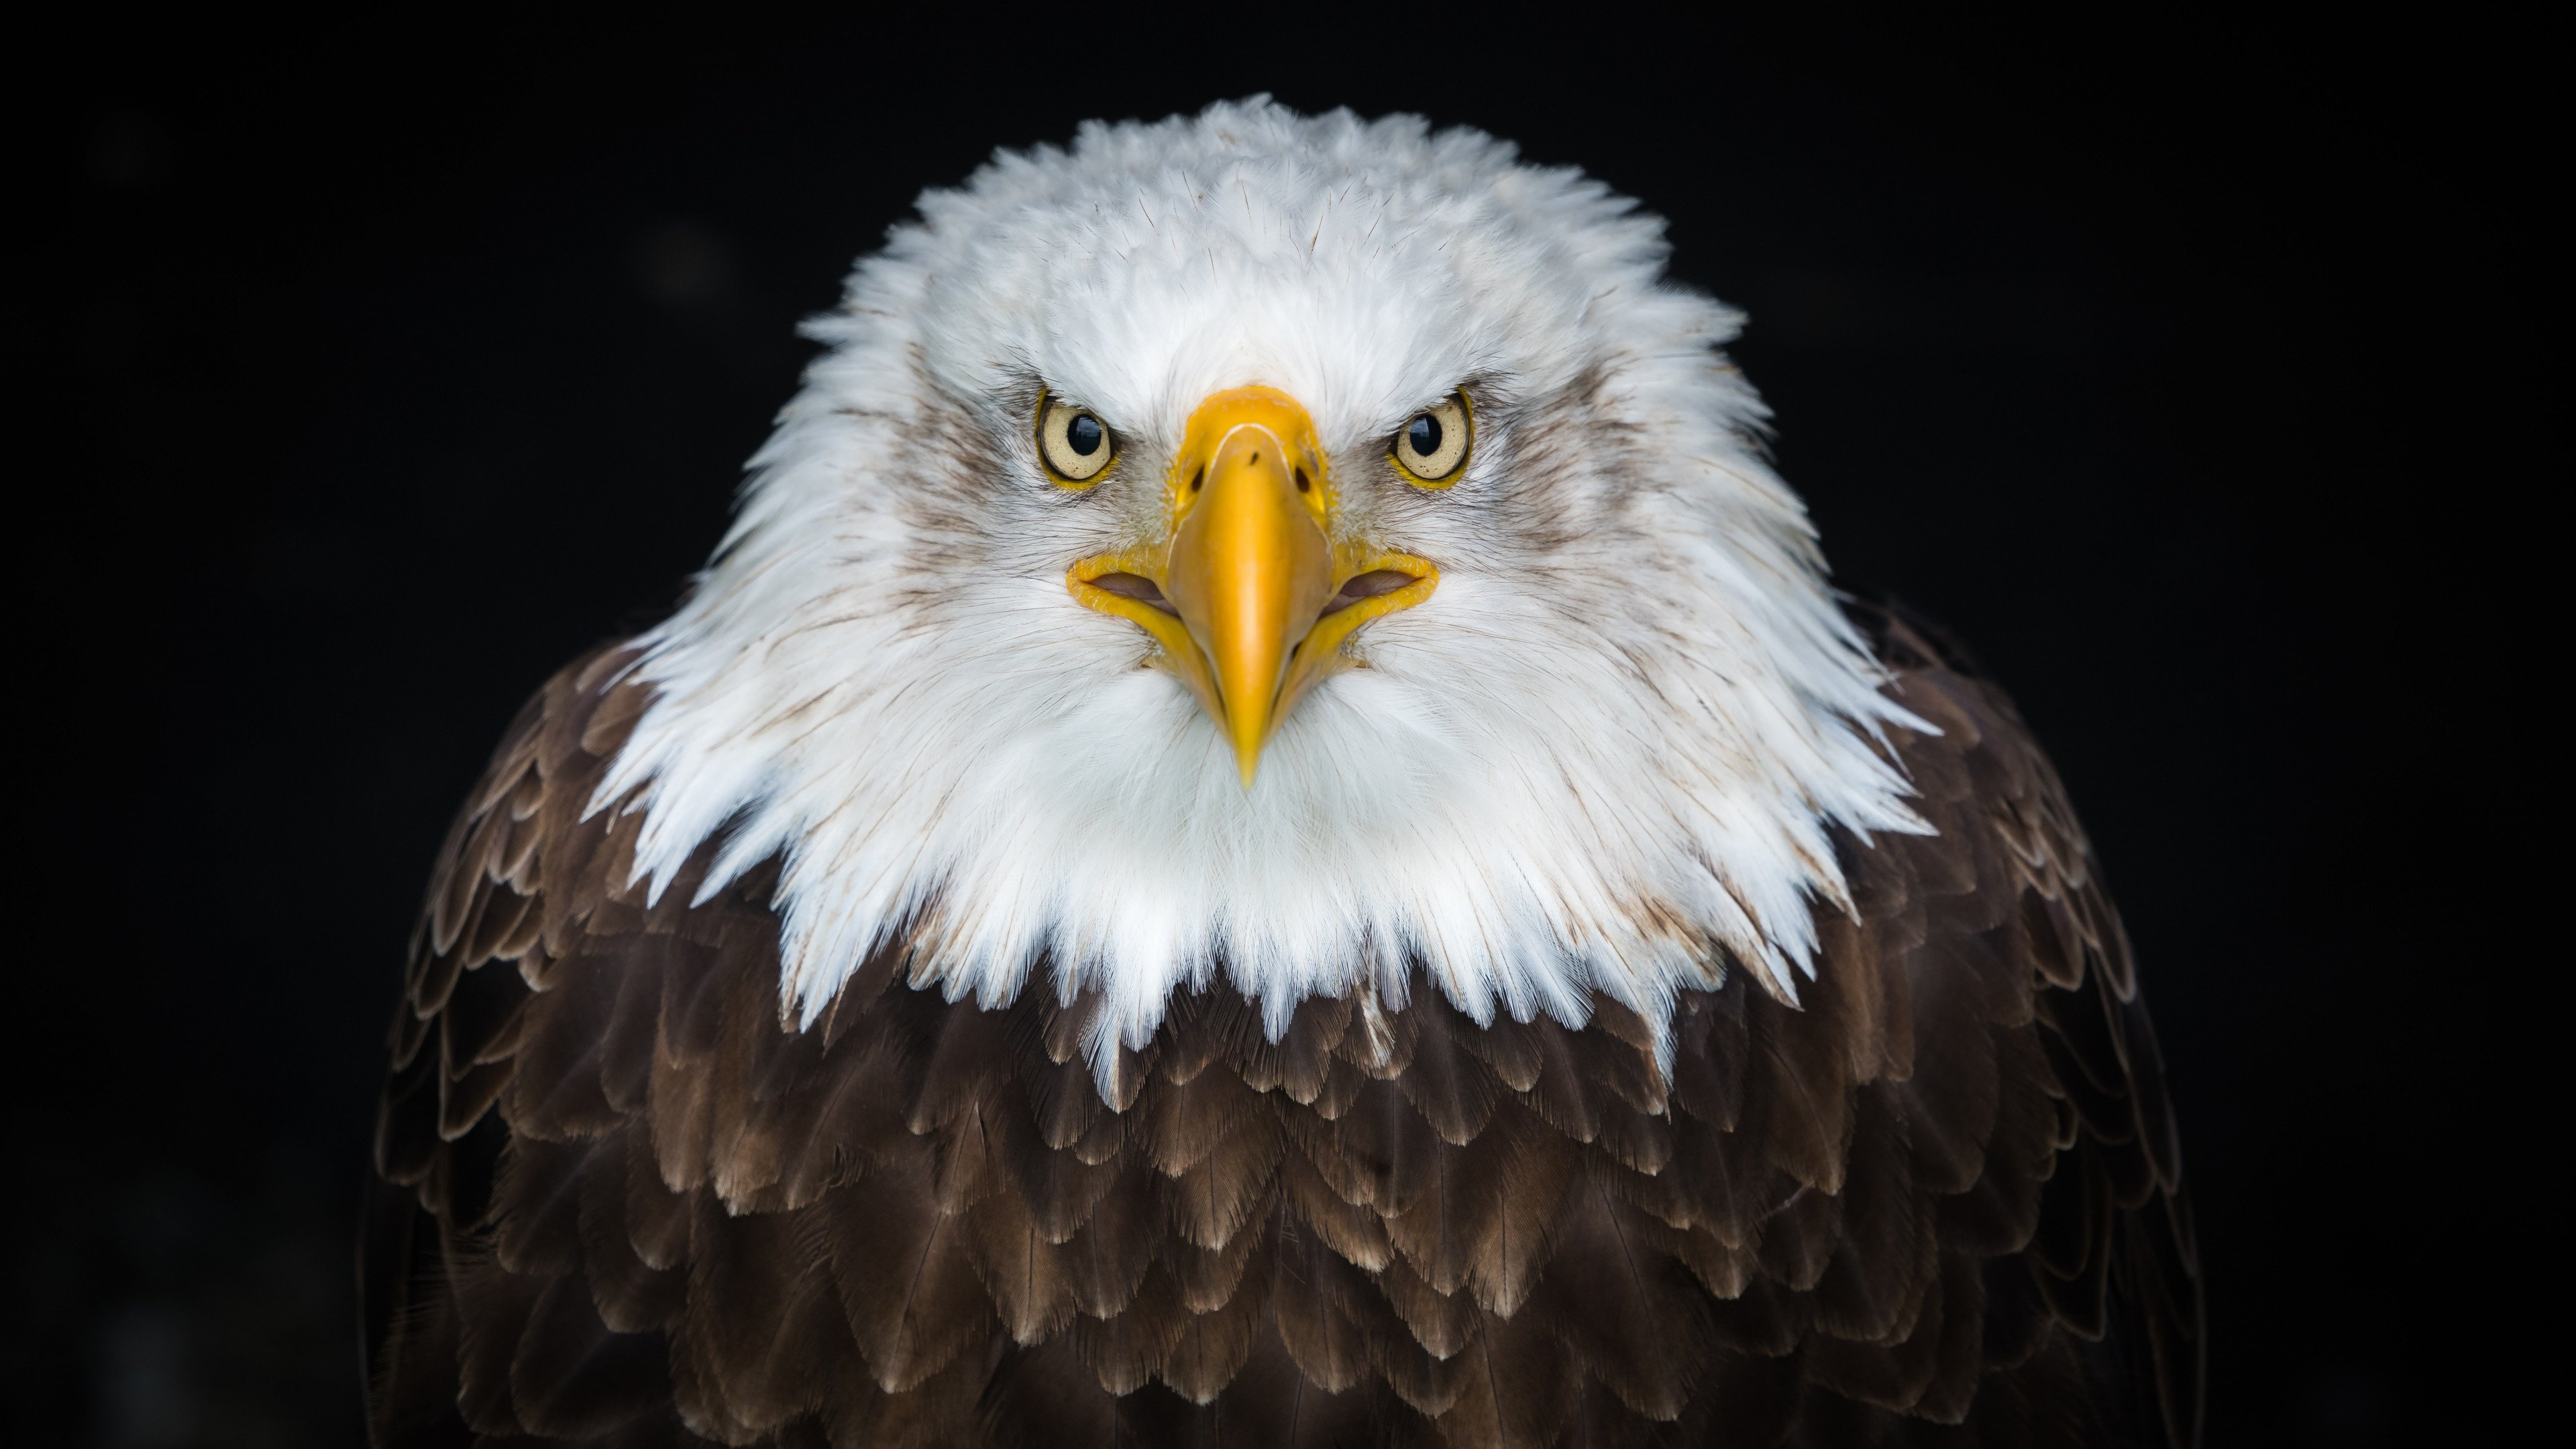 Eagle 4k Wallpapers For Your Desktop Or Mobile Screen Free